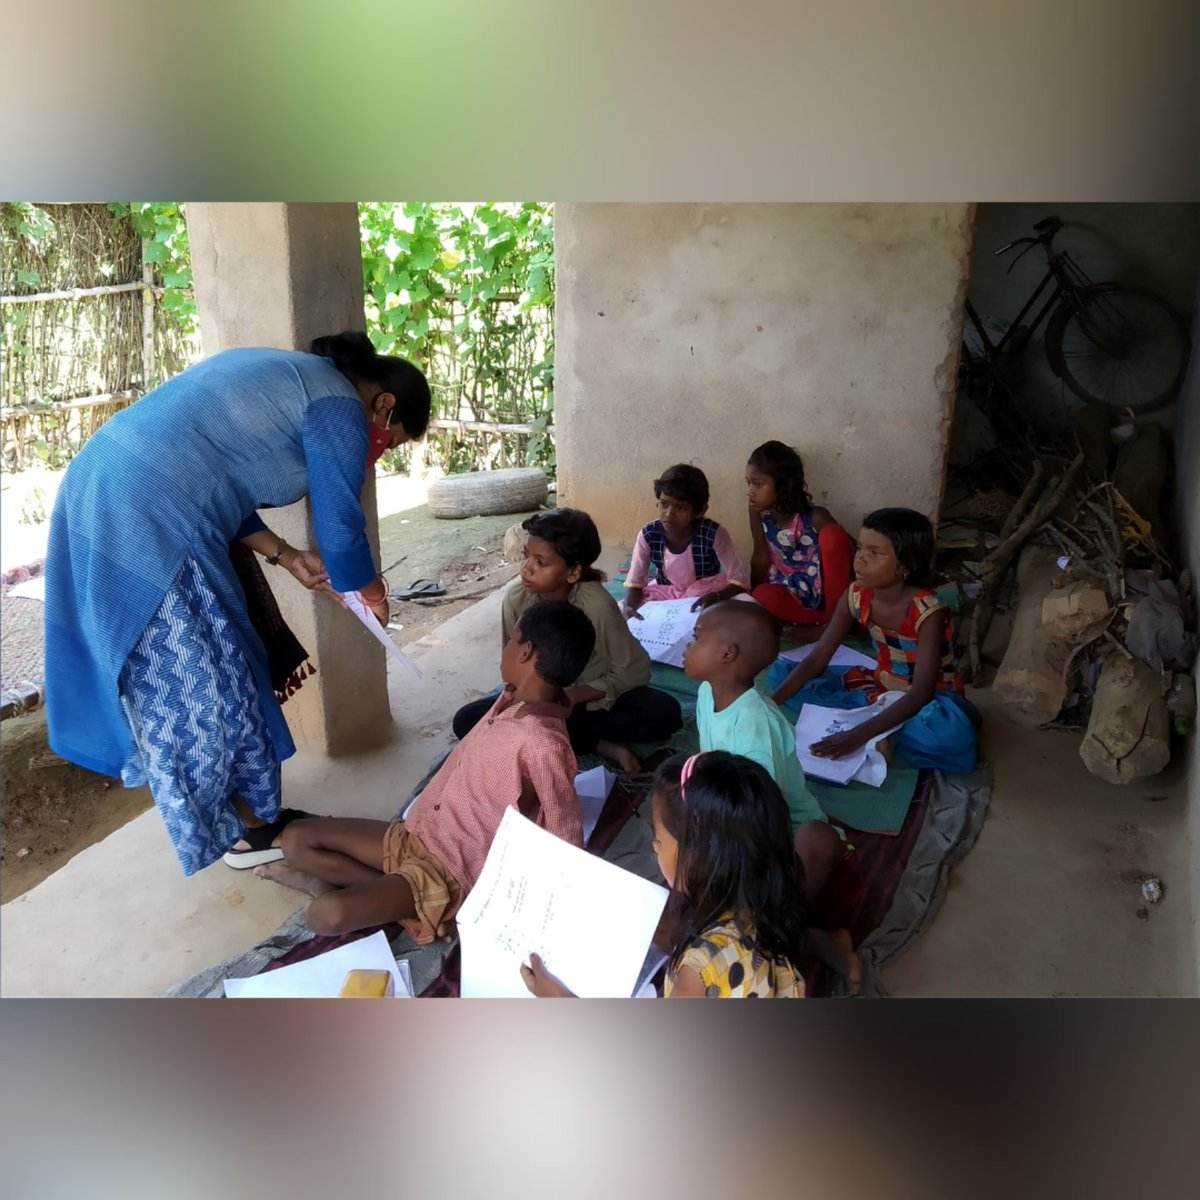 Having a feedback loop and keeping it individualised has supported #children being invested in the #learning process. To support our work contribute  #education #foundationallearning #ruralindia #educateindia #nonprofits #AspirationalDistrict #Sonebhadra